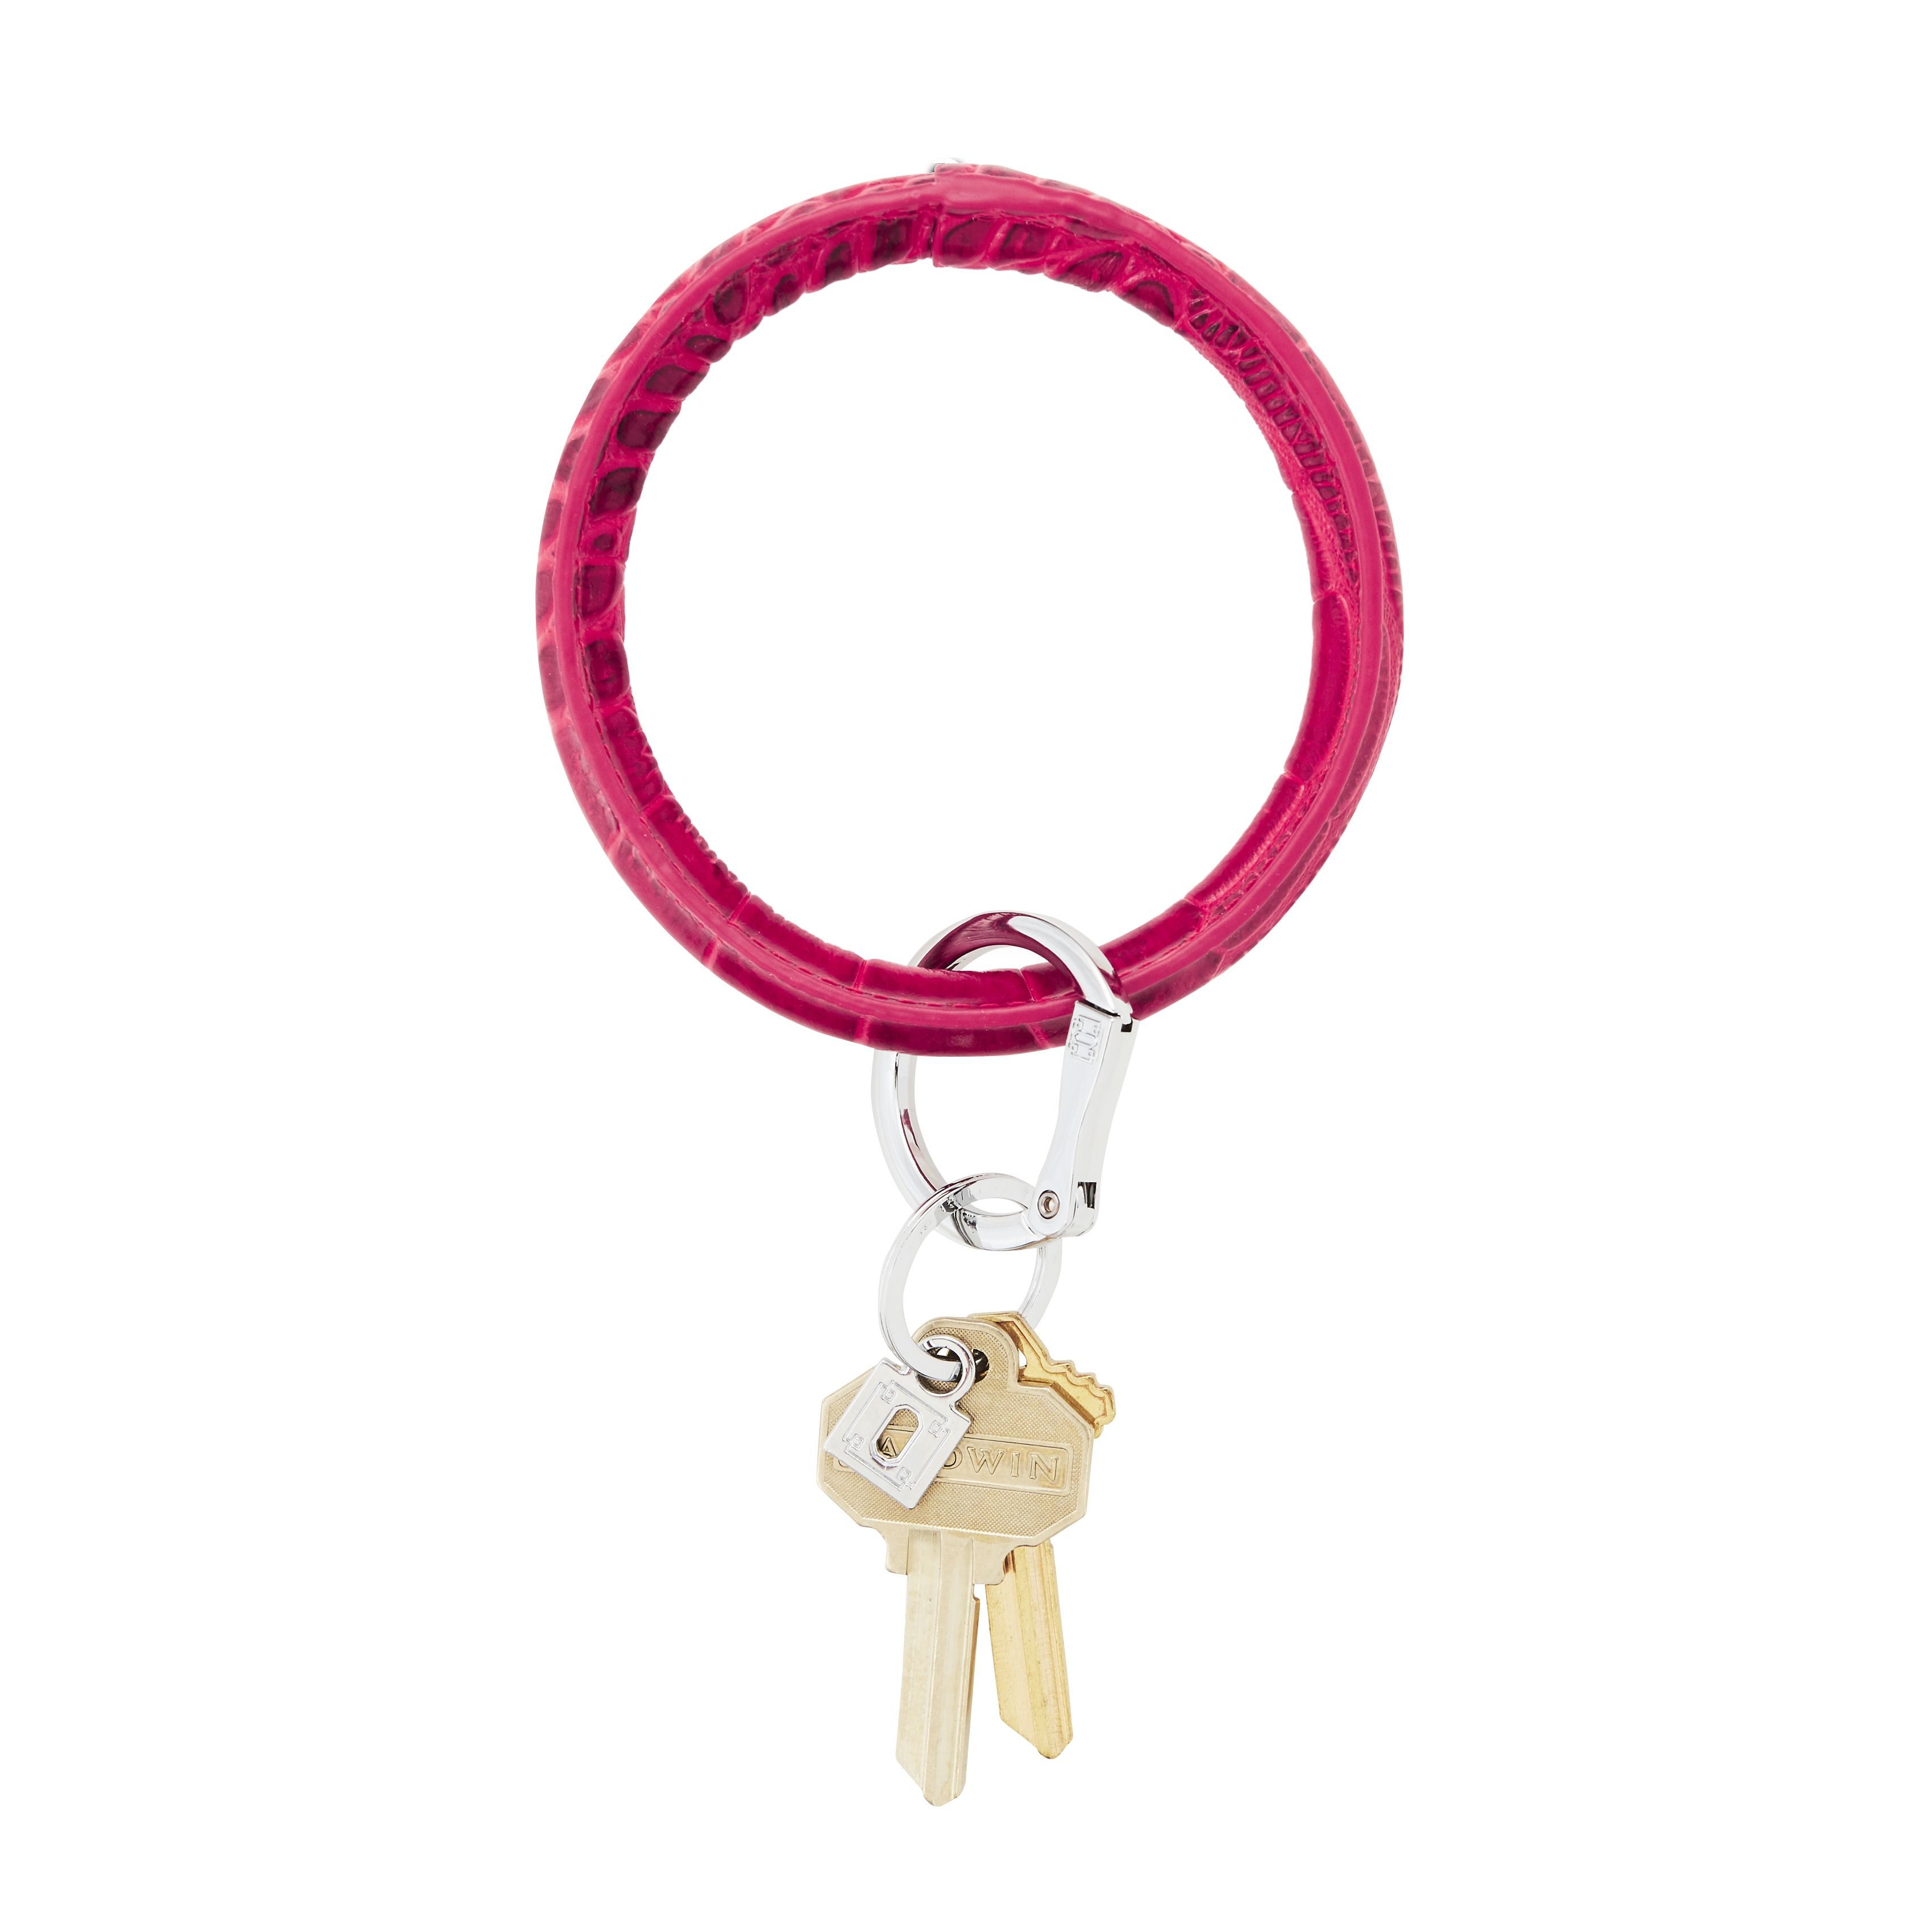 O Venture Key Ring These Mom Gifts Will Make Their Lives Easier